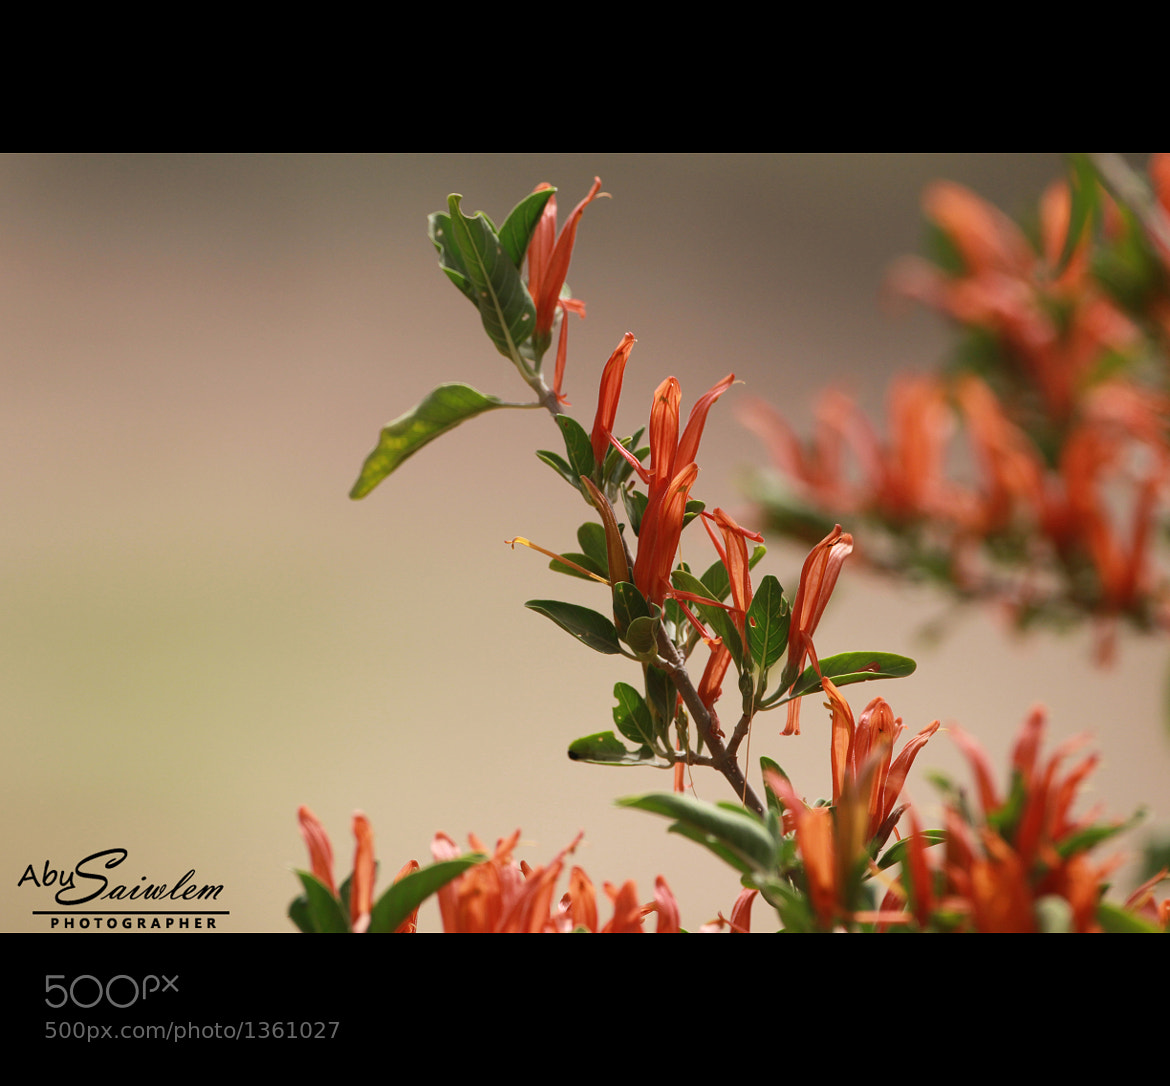 Photograph Anisotes trisulcus by Abu  Swailem on 500px